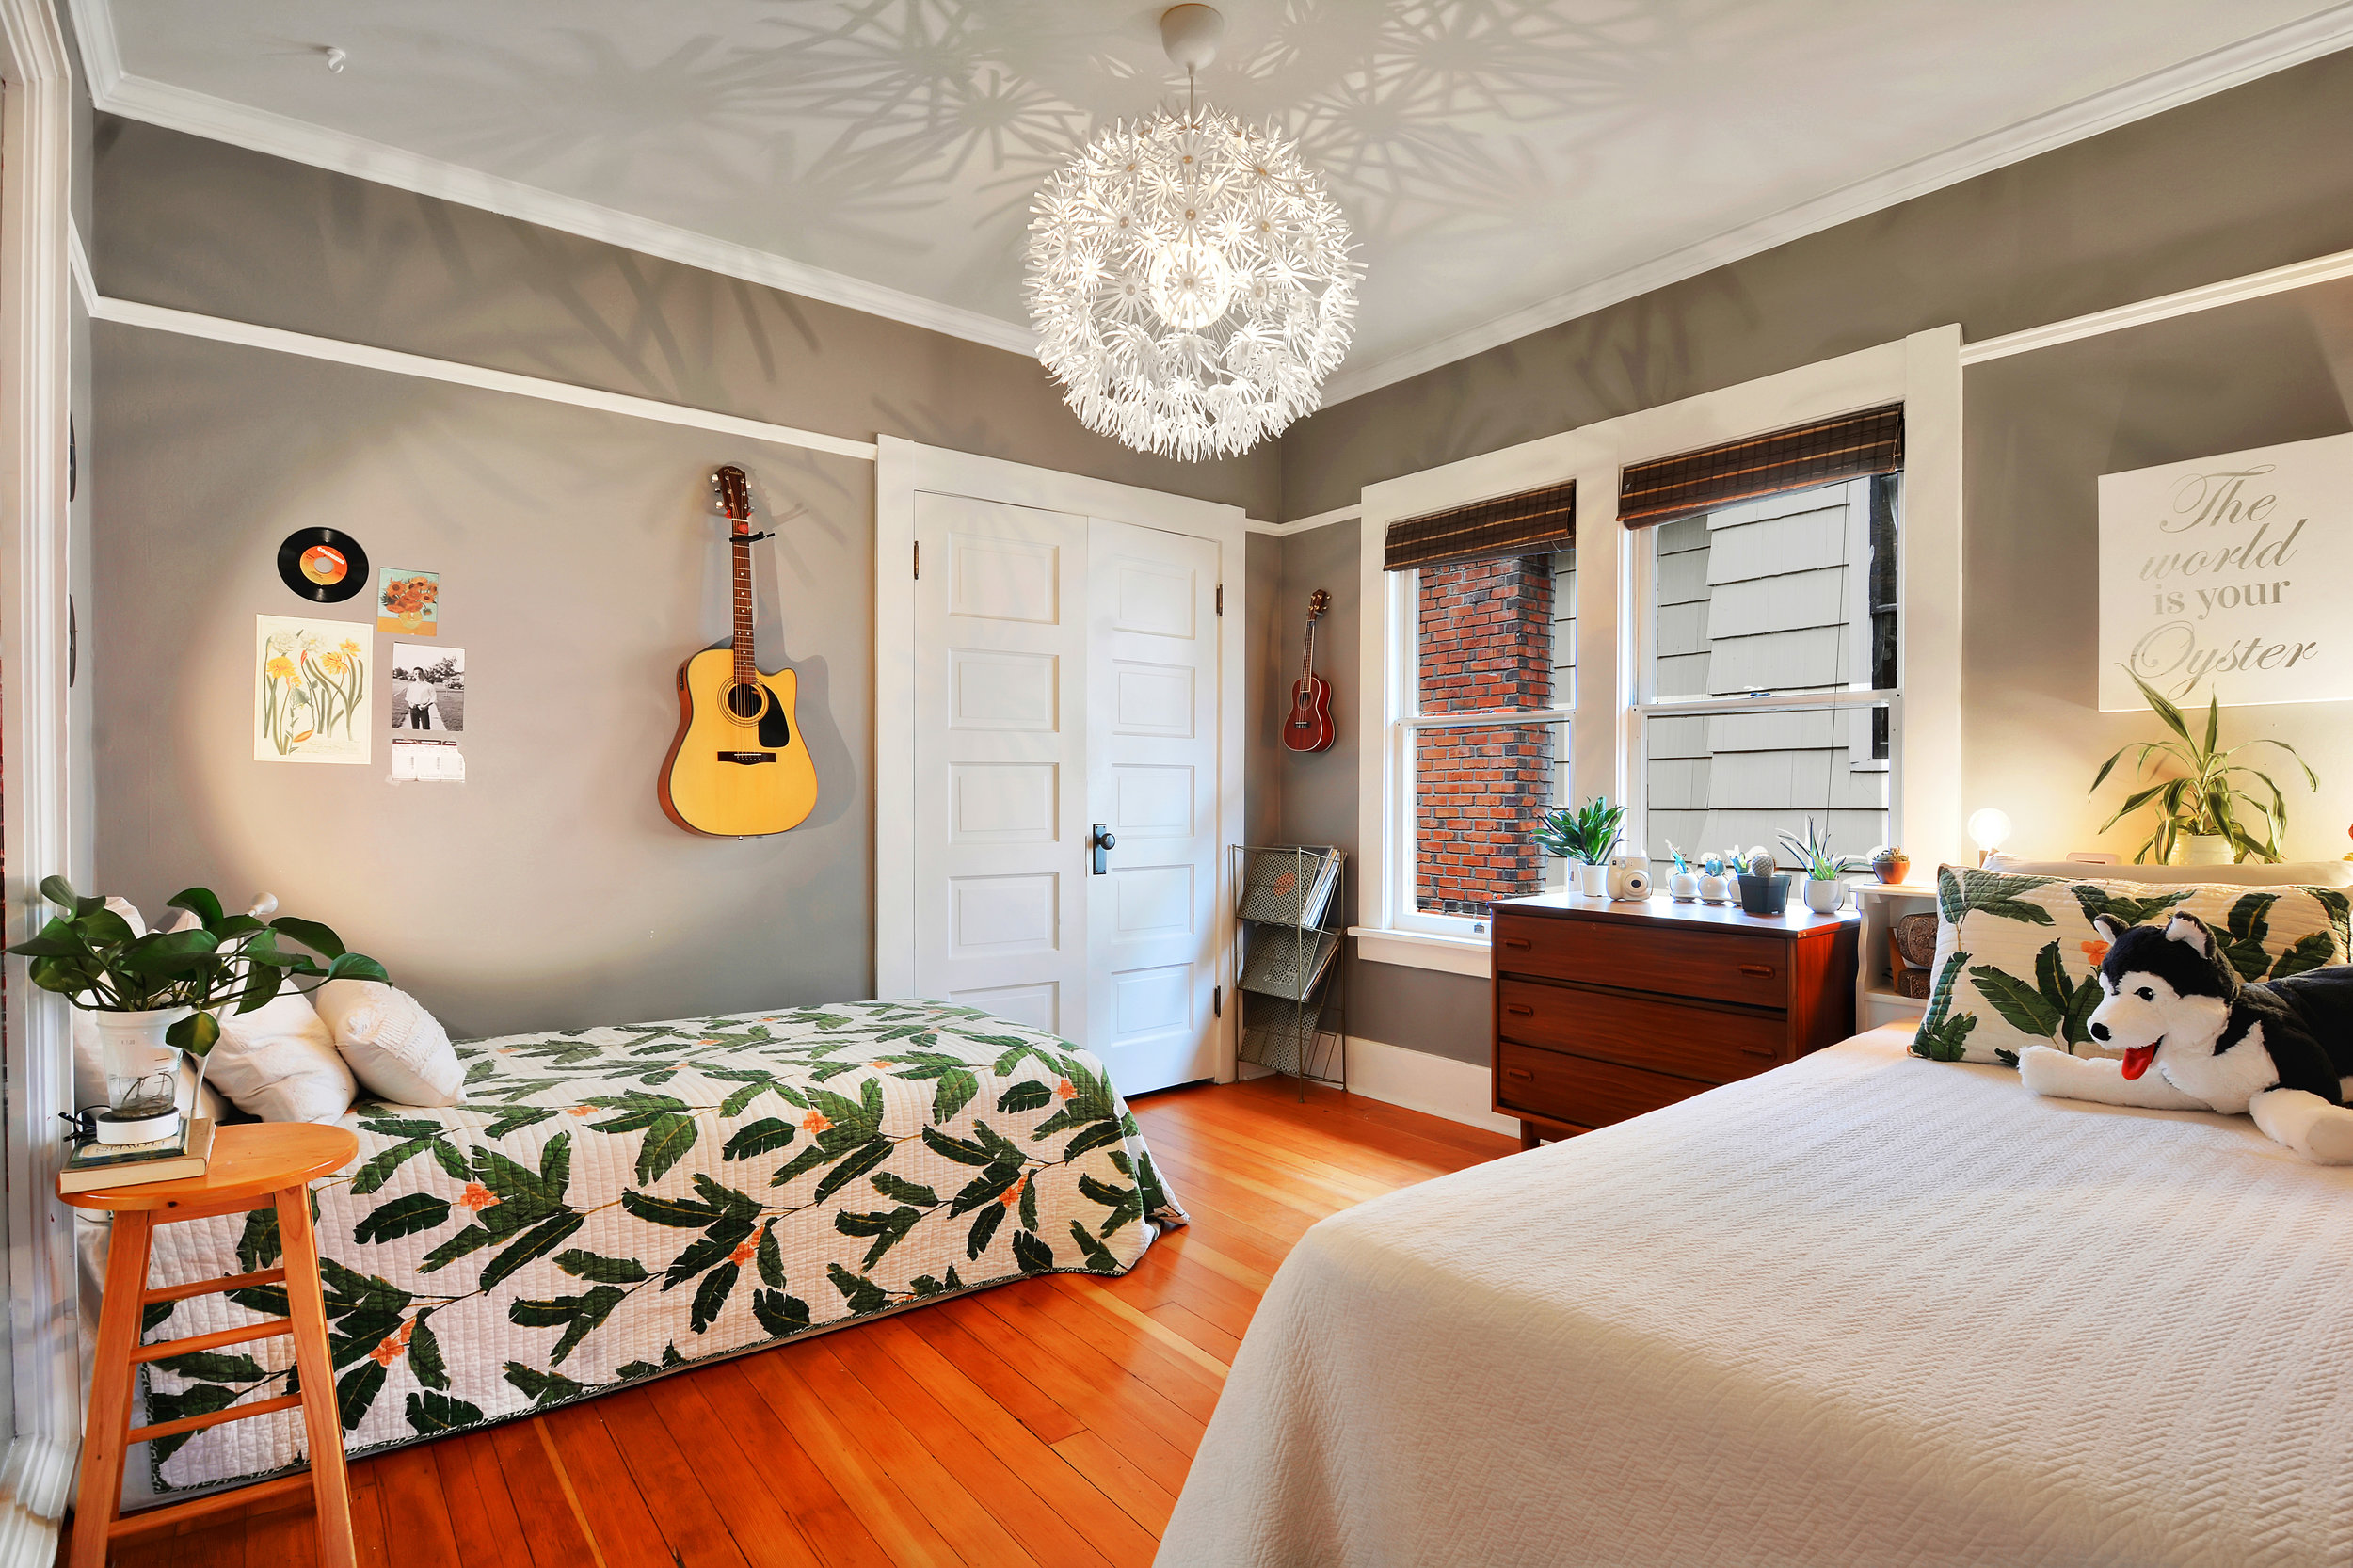 This main floor bedroom sets up nicely with two twin beds for a shared room or sleepovers.